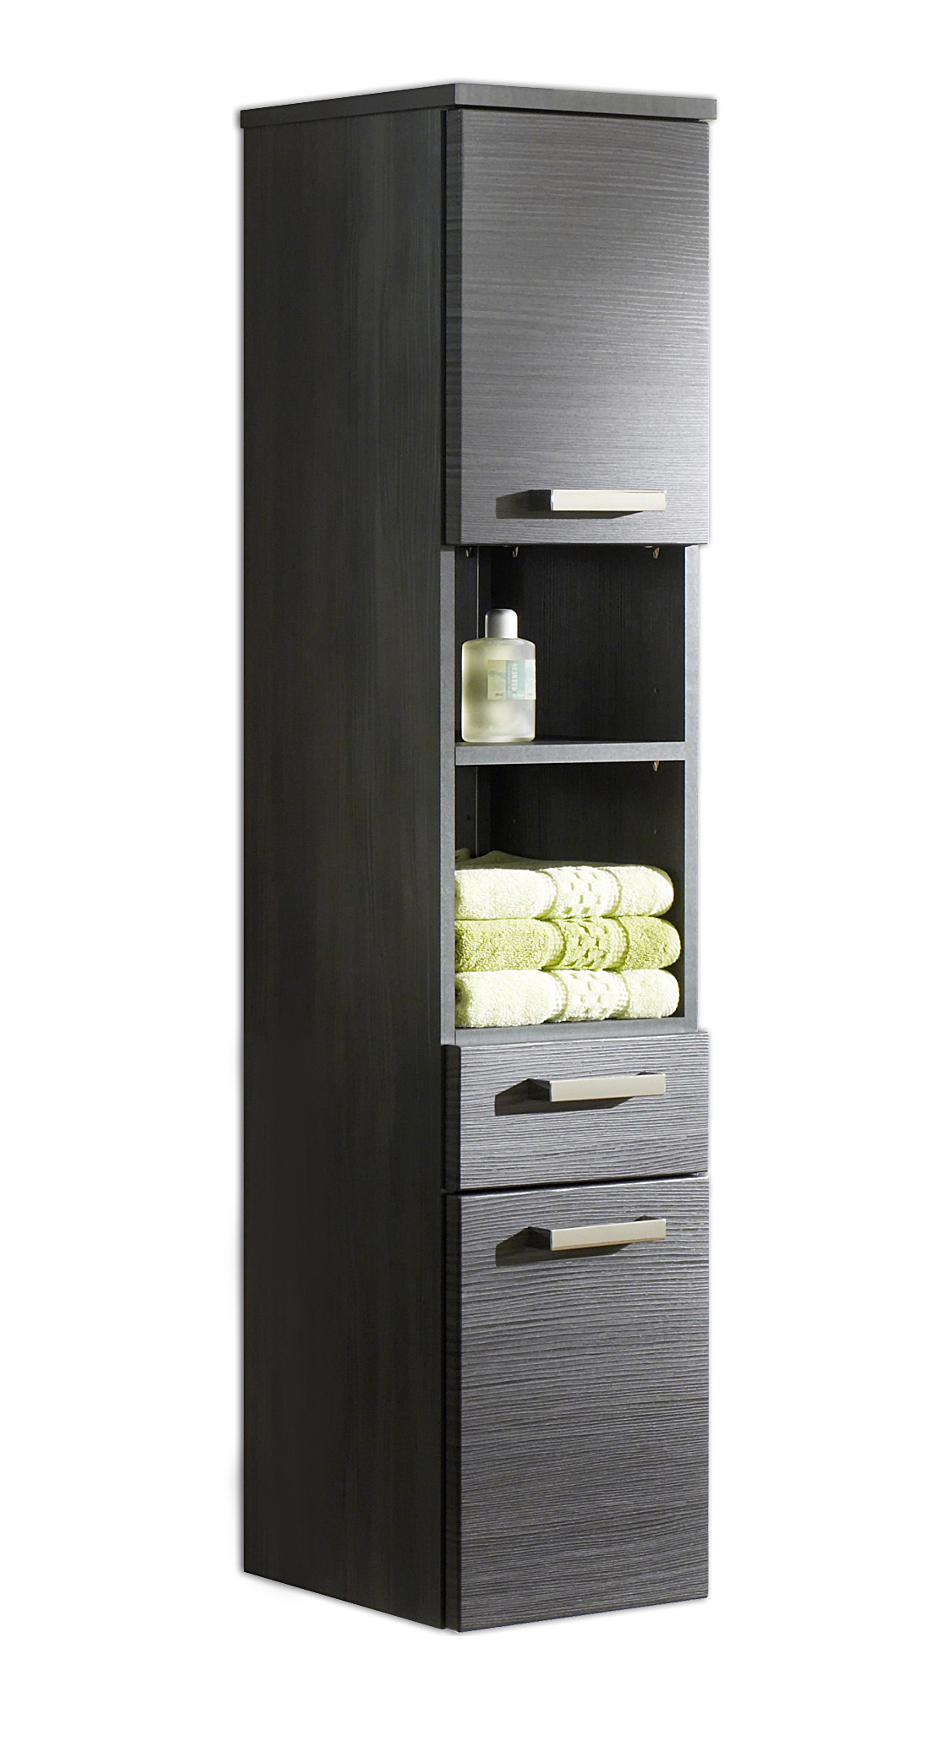 badm bel set marano mit spiegelschrank 5 teilig 90 cm breit grau bad badm belsets. Black Bedroom Furniture Sets. Home Design Ideas